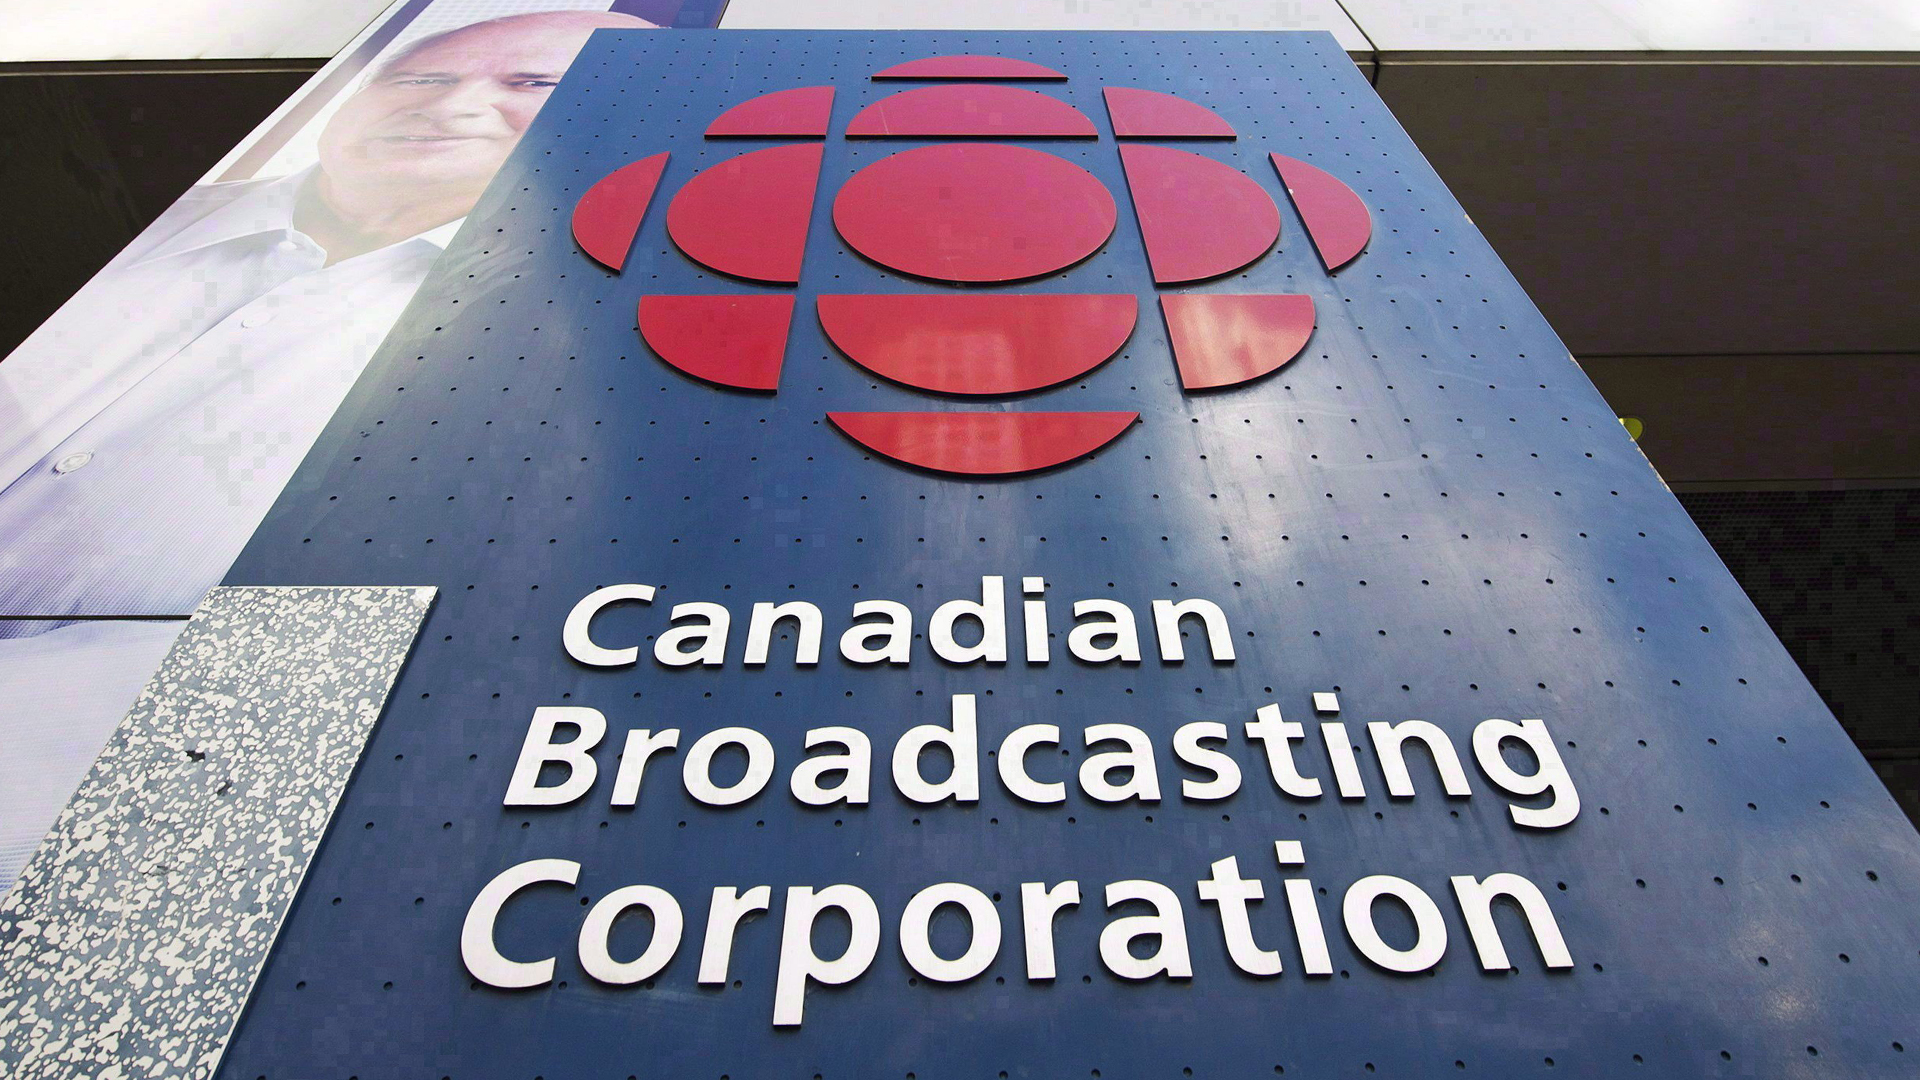 CBC loses copyright claim against Conservatives in federal court